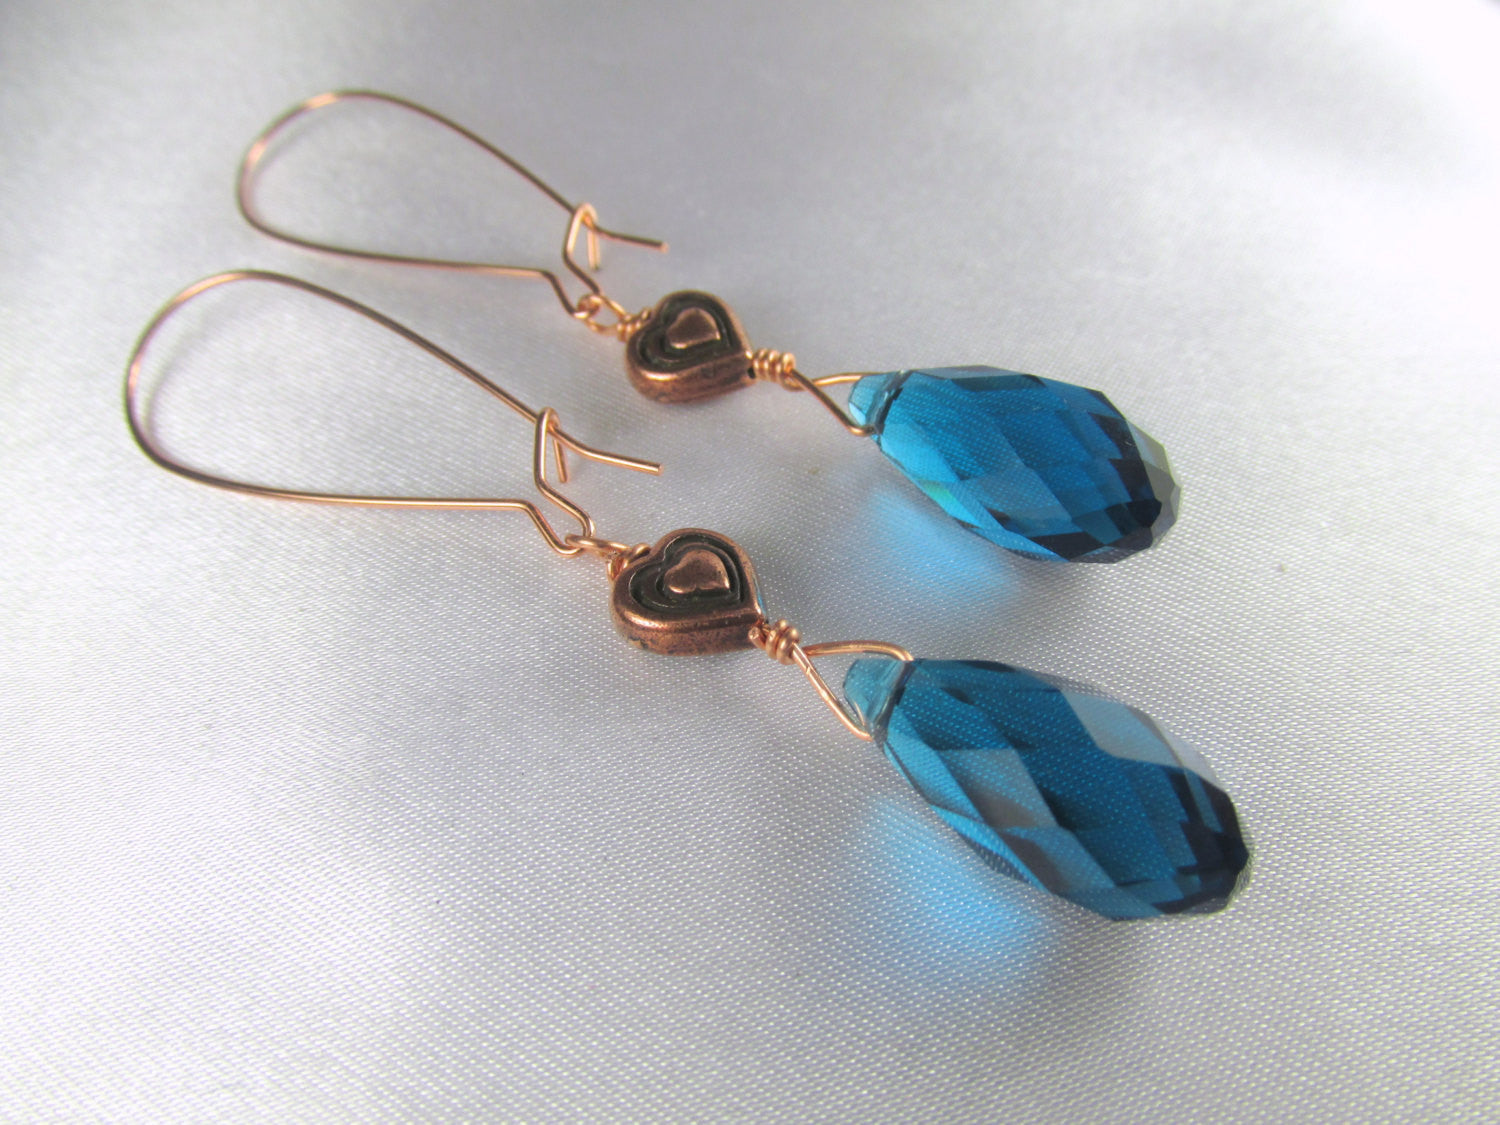 Copper Heart and Blue Teal Crystal Drop Earrings on Kidney Wires - Odyssey Creations